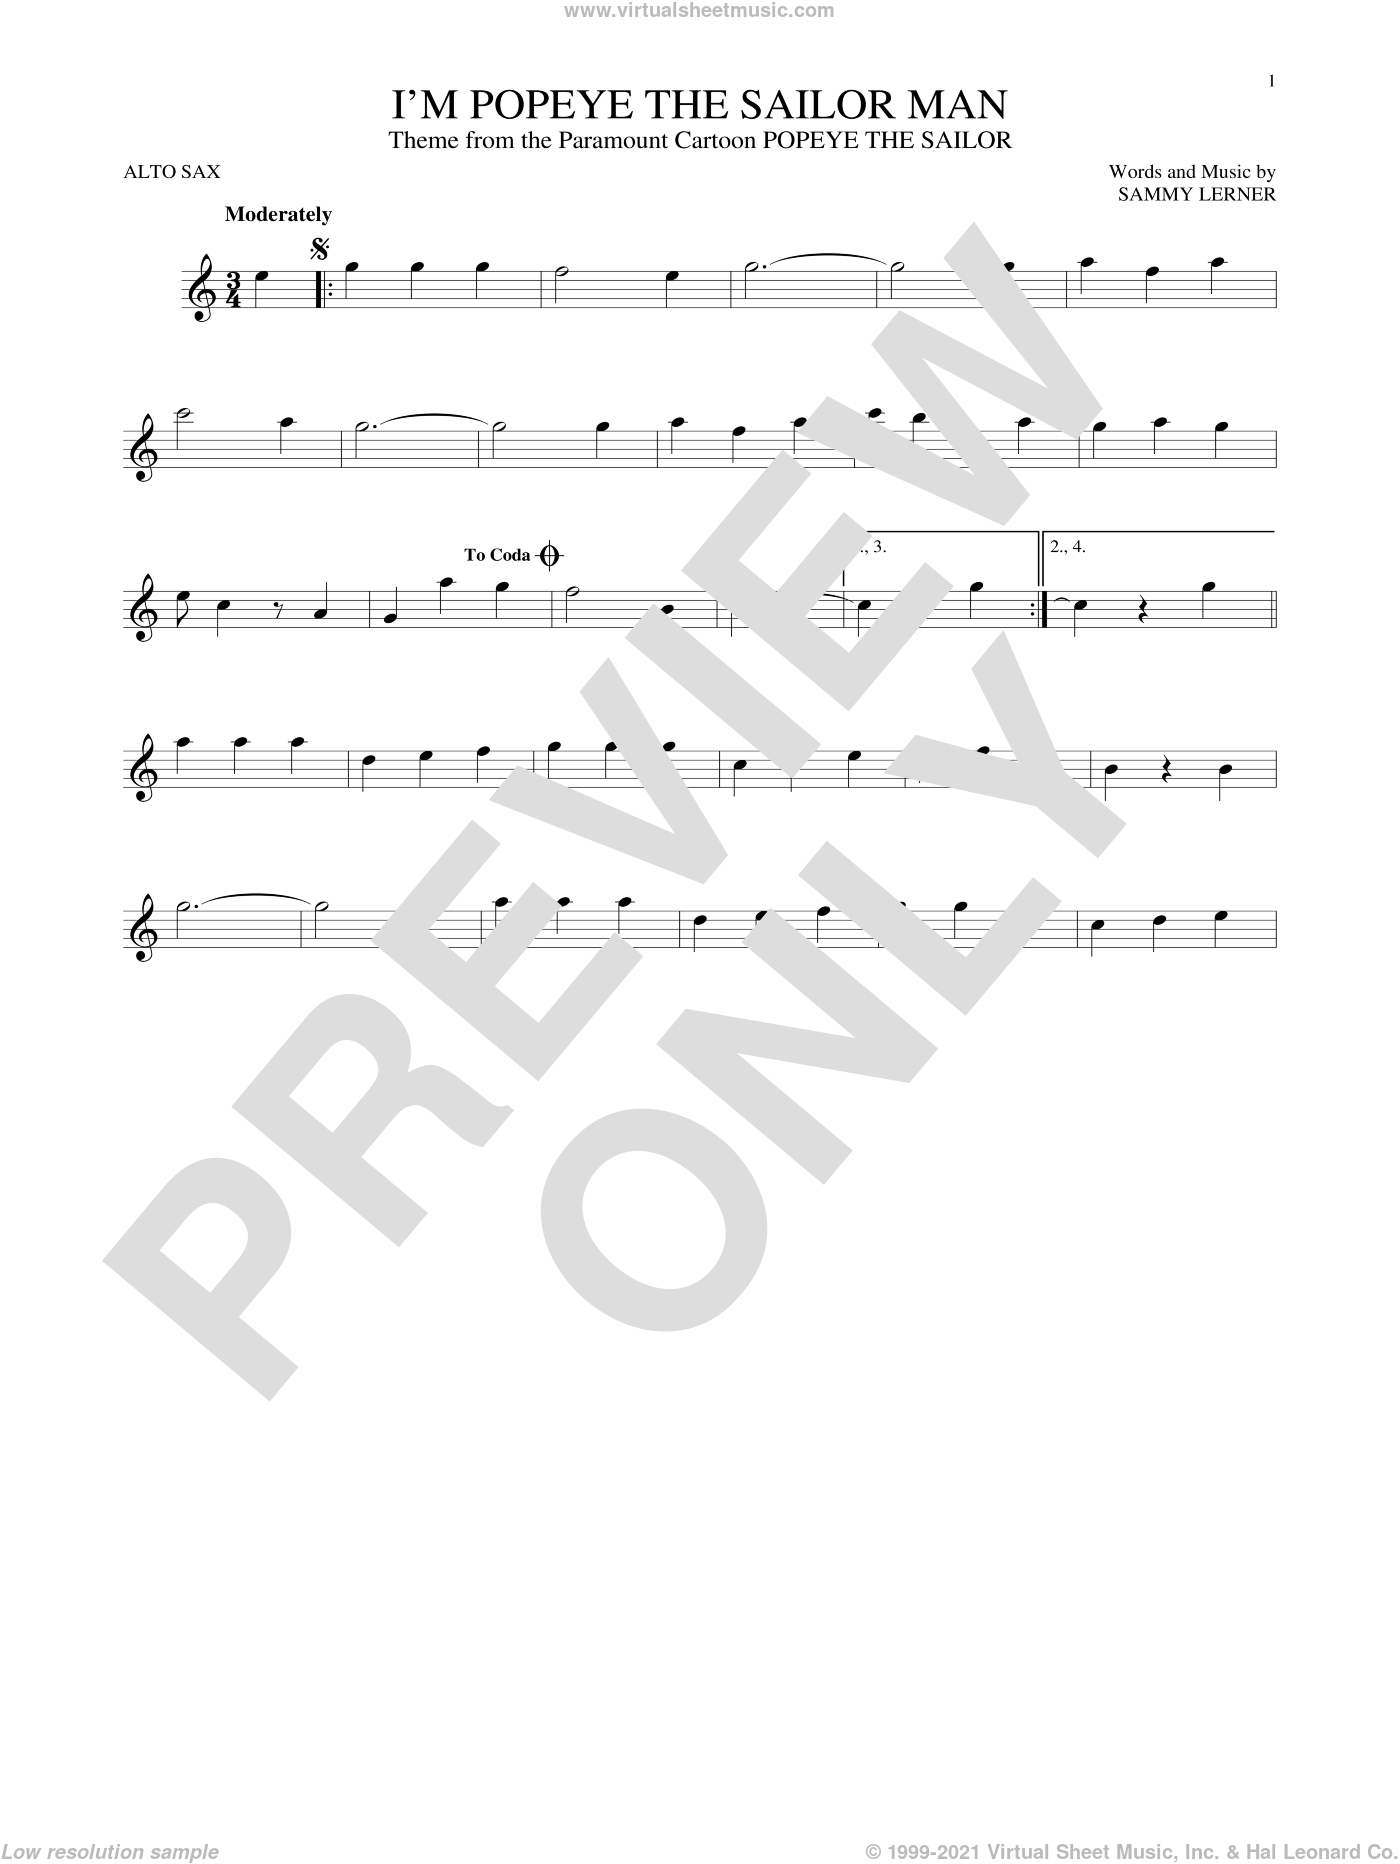 I'm Popeye The Sailor Man sheet music for alto saxophone solo by Sammy Lerner